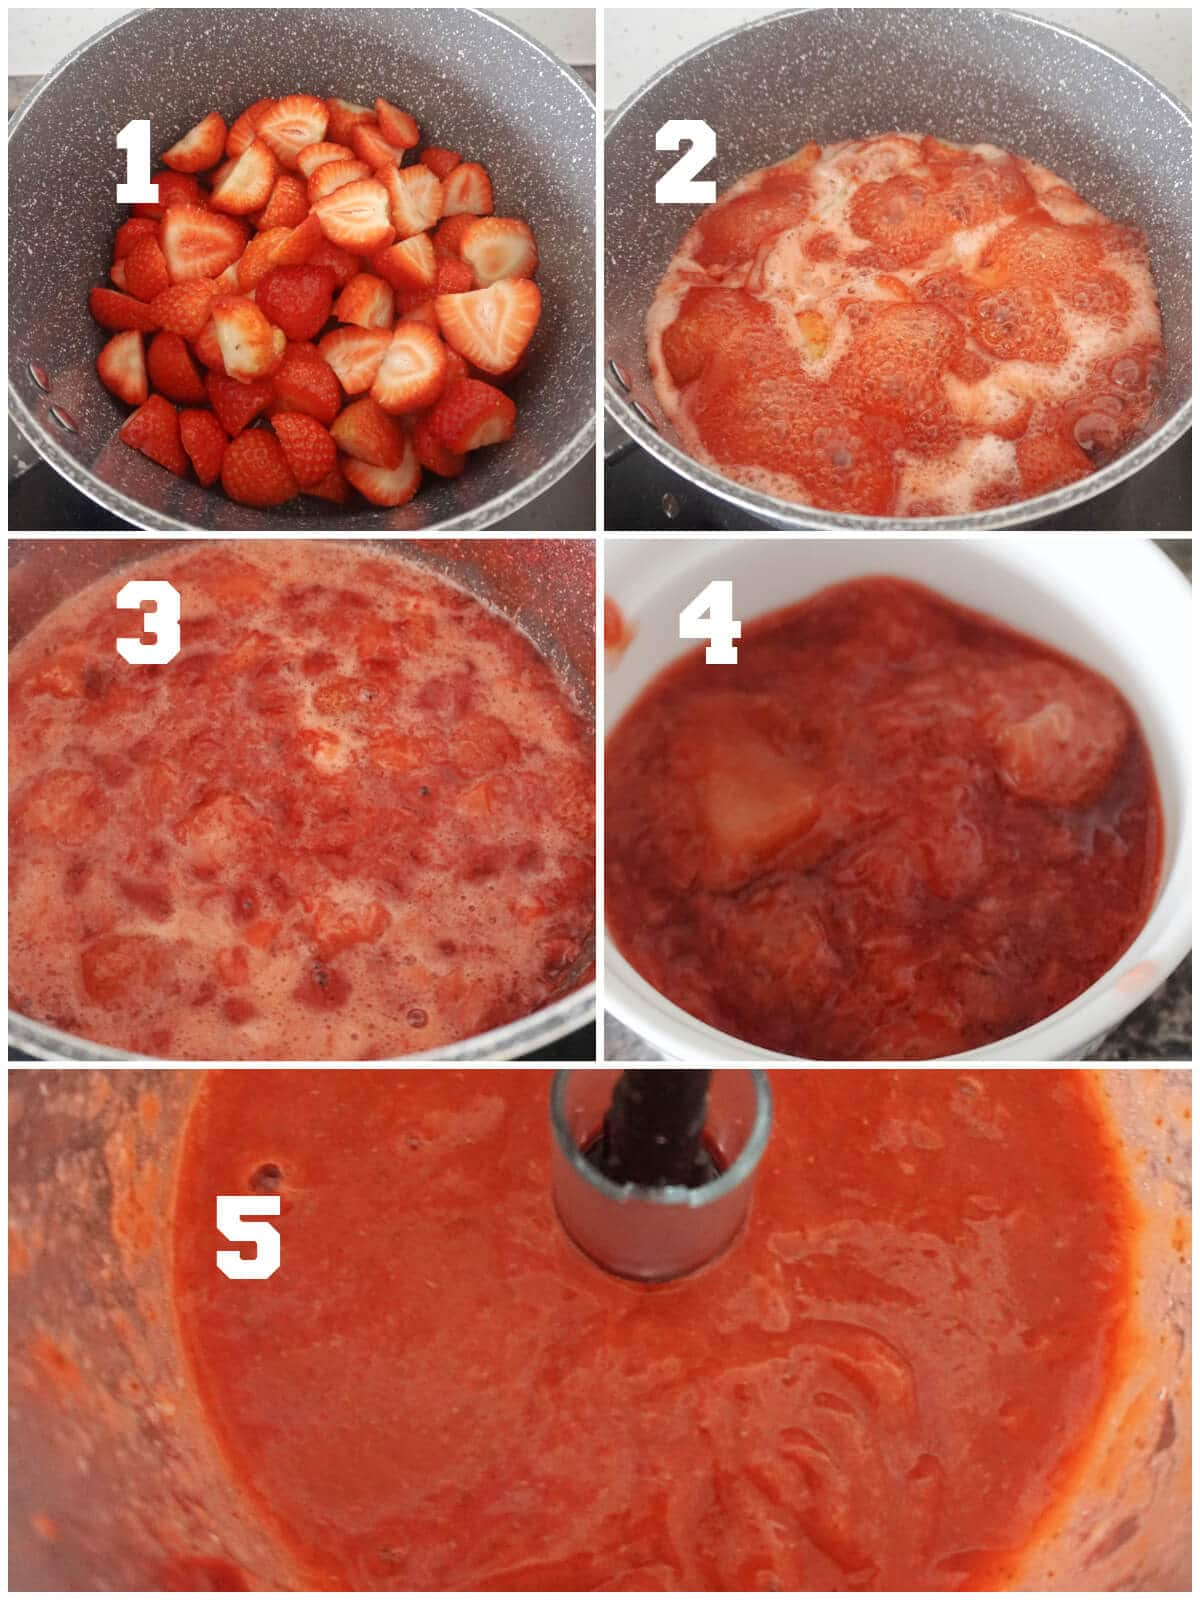 Collage of 5 photos to show how to make strawberry puree for ice cream